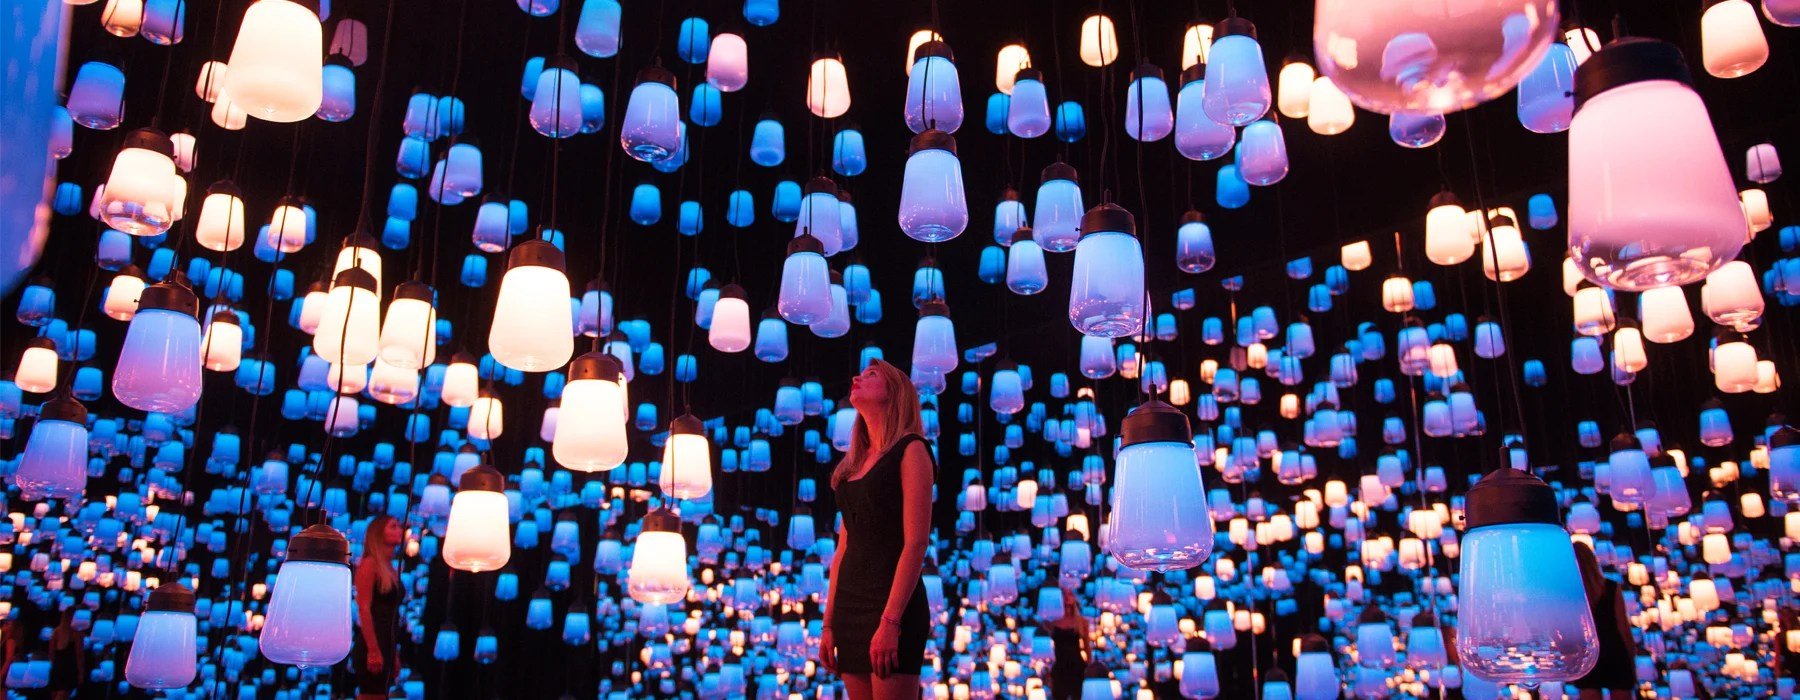 Teamlab Suspends Forest Of Resonating Lamps At Maison Et Objet